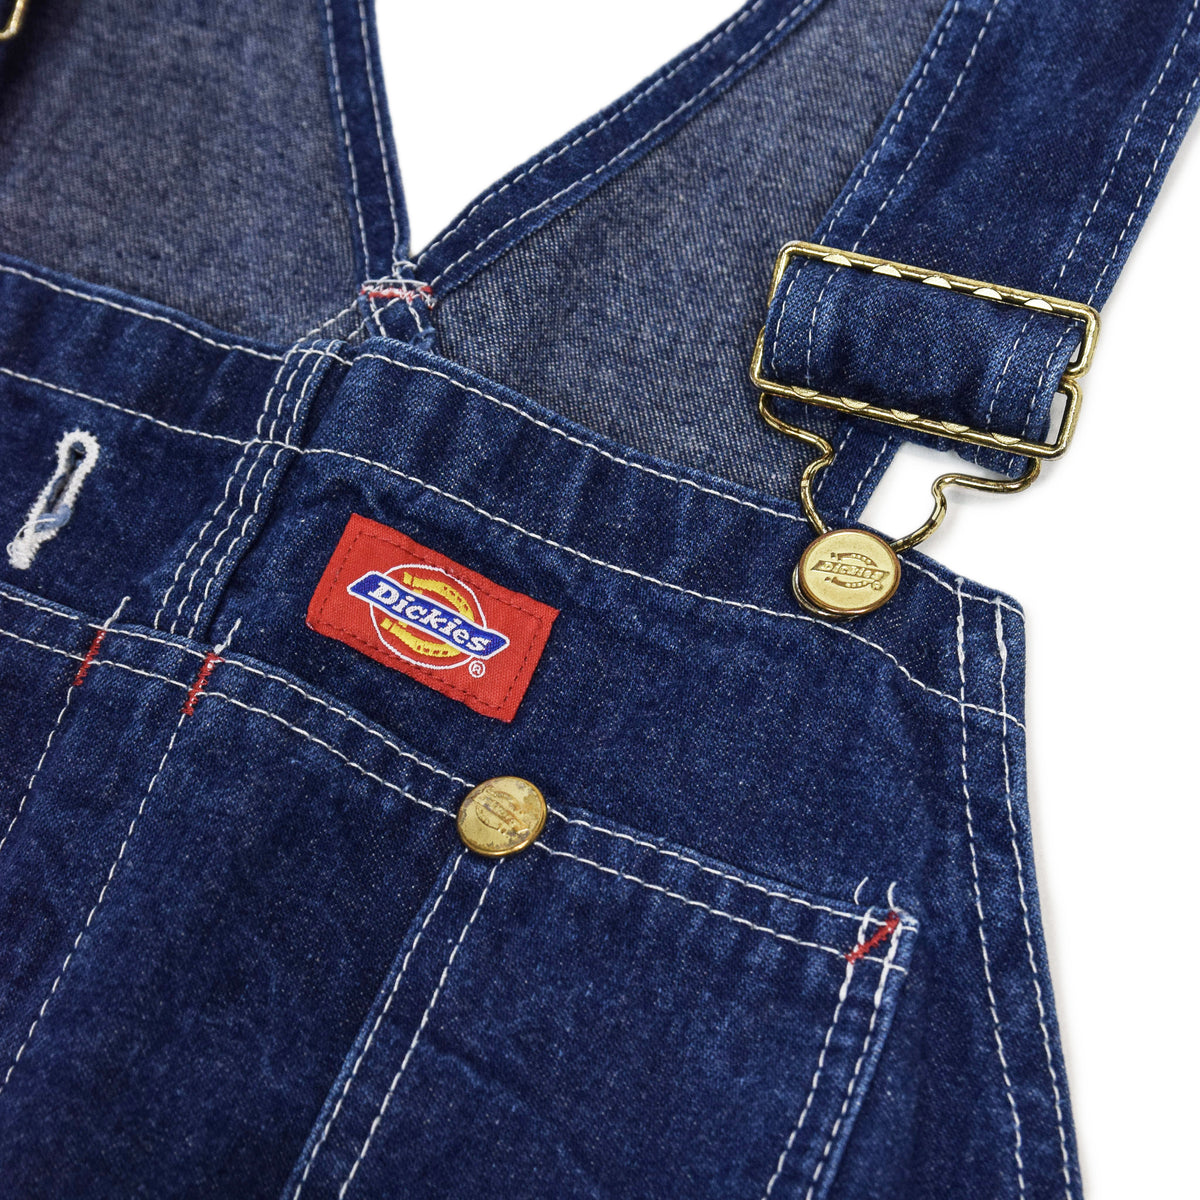 Vintage Dickies Denim Work Dungarees Blue Bib Overalls Trousers M chest details